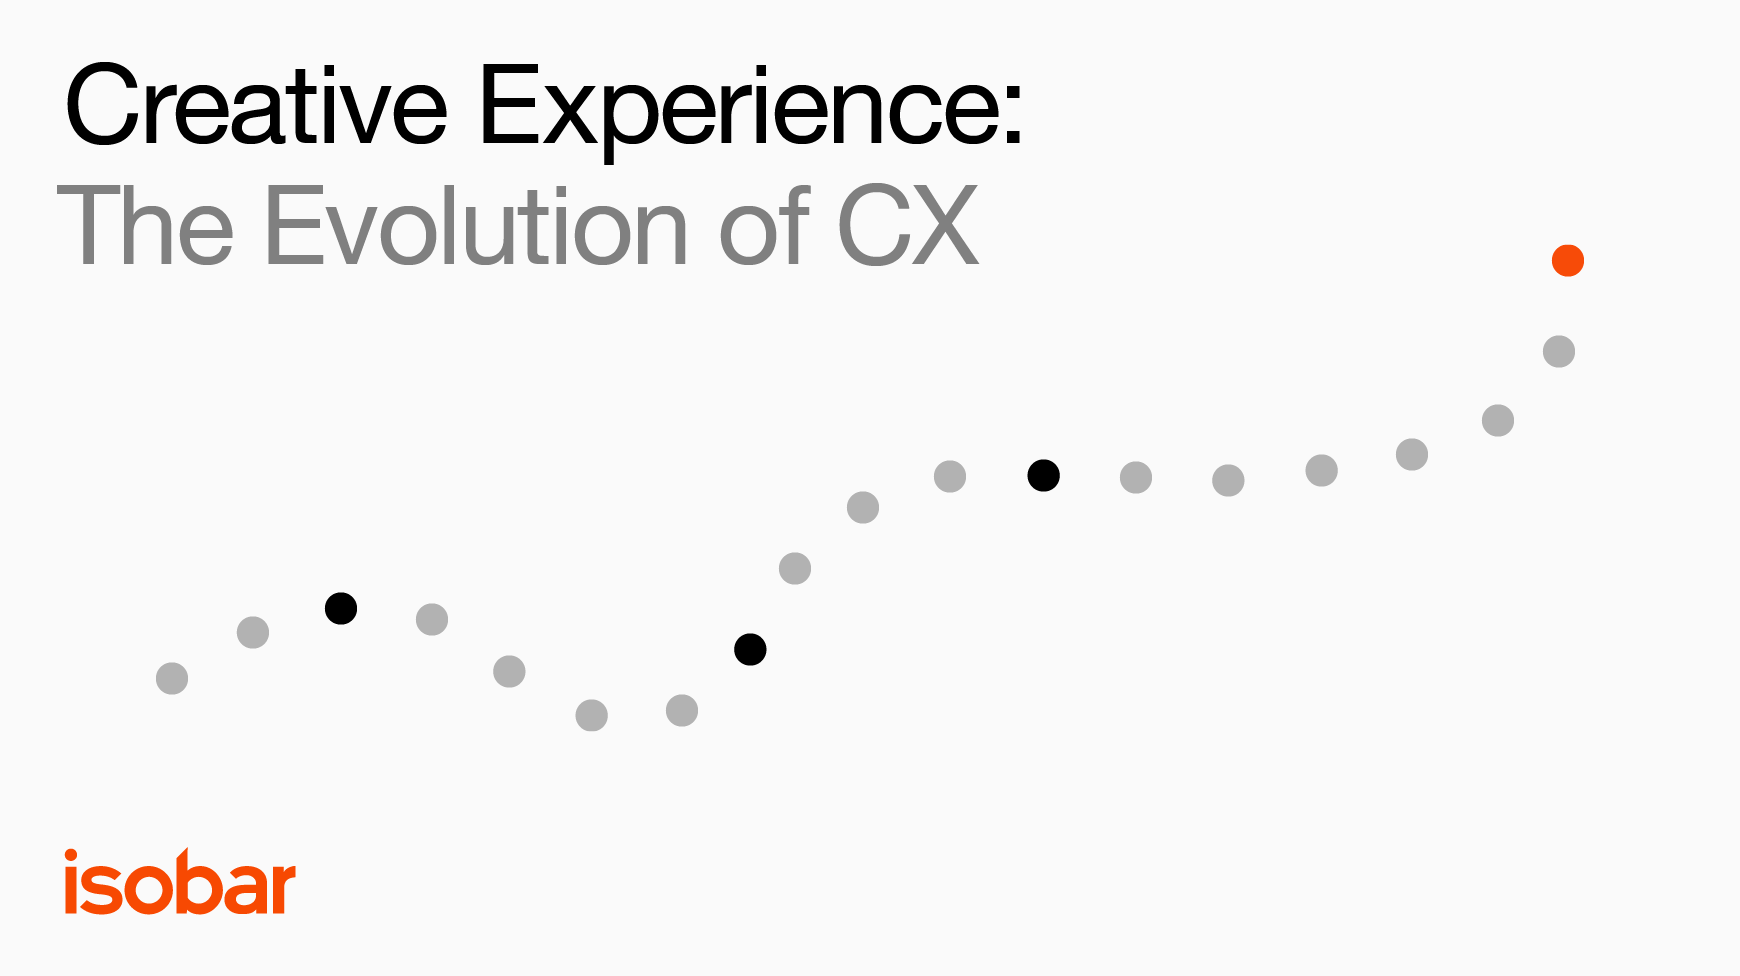 Creative Experience: the evolution of CX: A must-read for any marketer aspiring to deliver next-level customer experiences